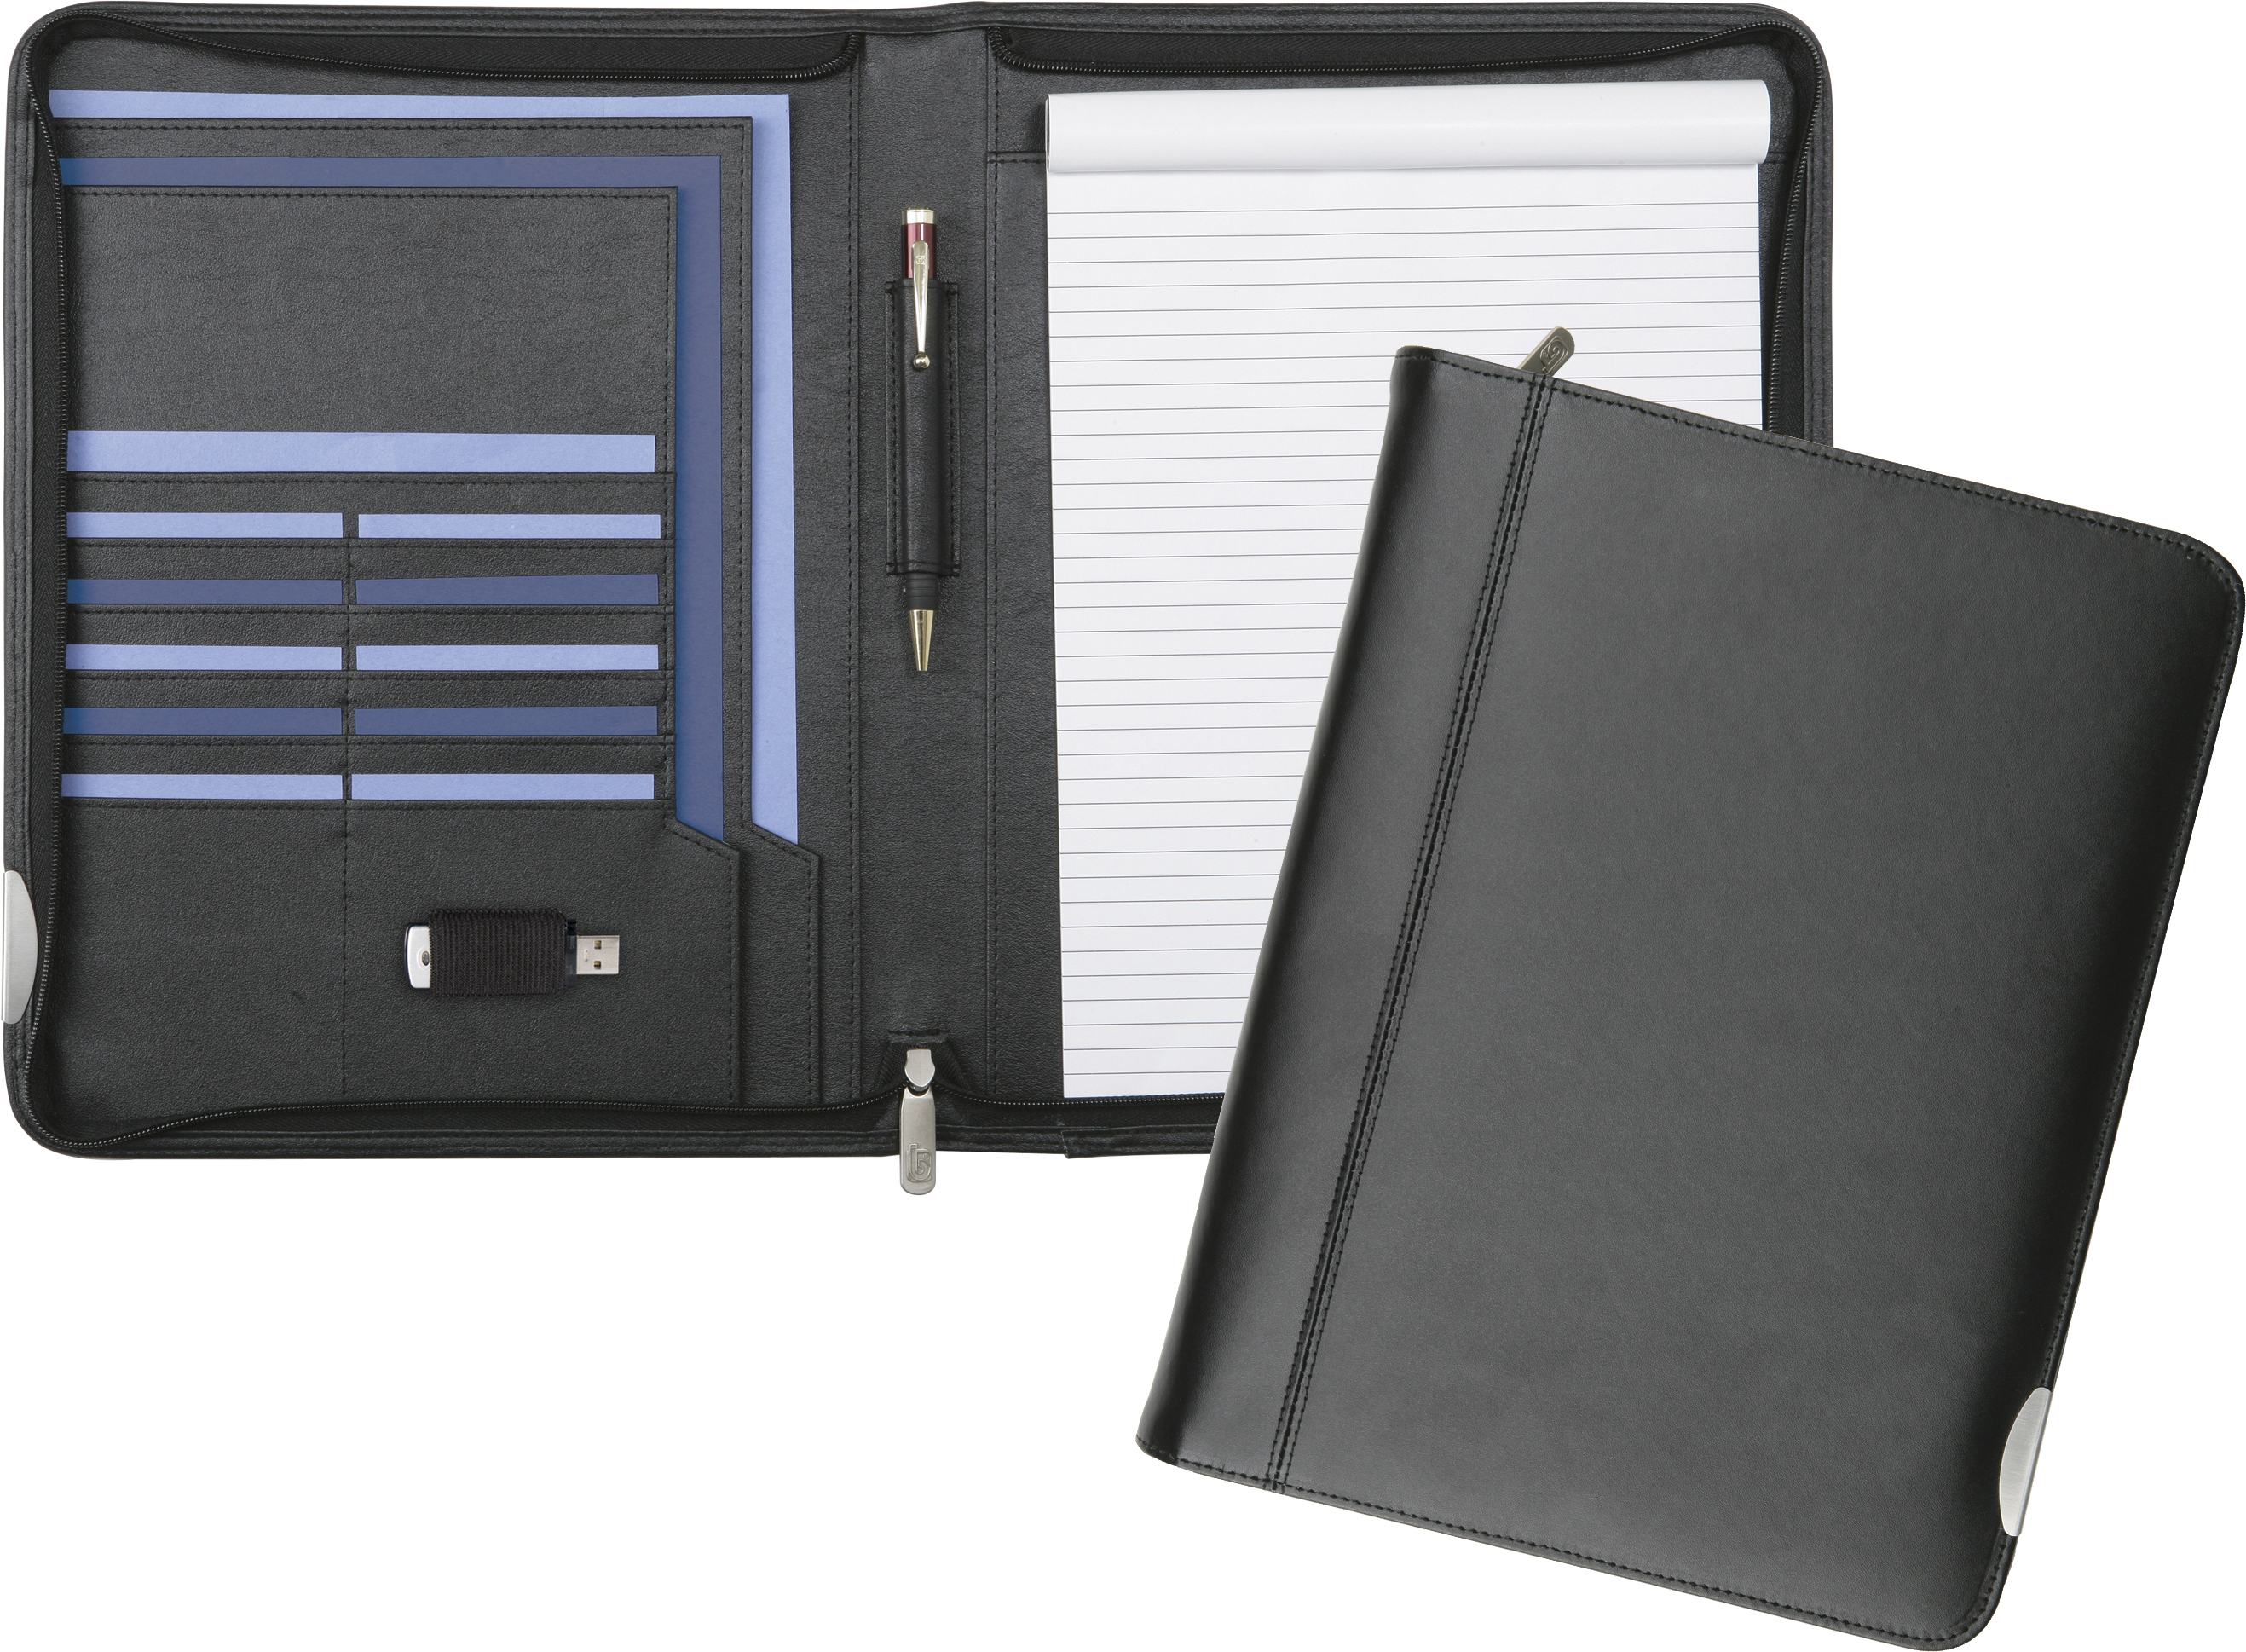 Promotional Fordcombe A4 Zipfolio